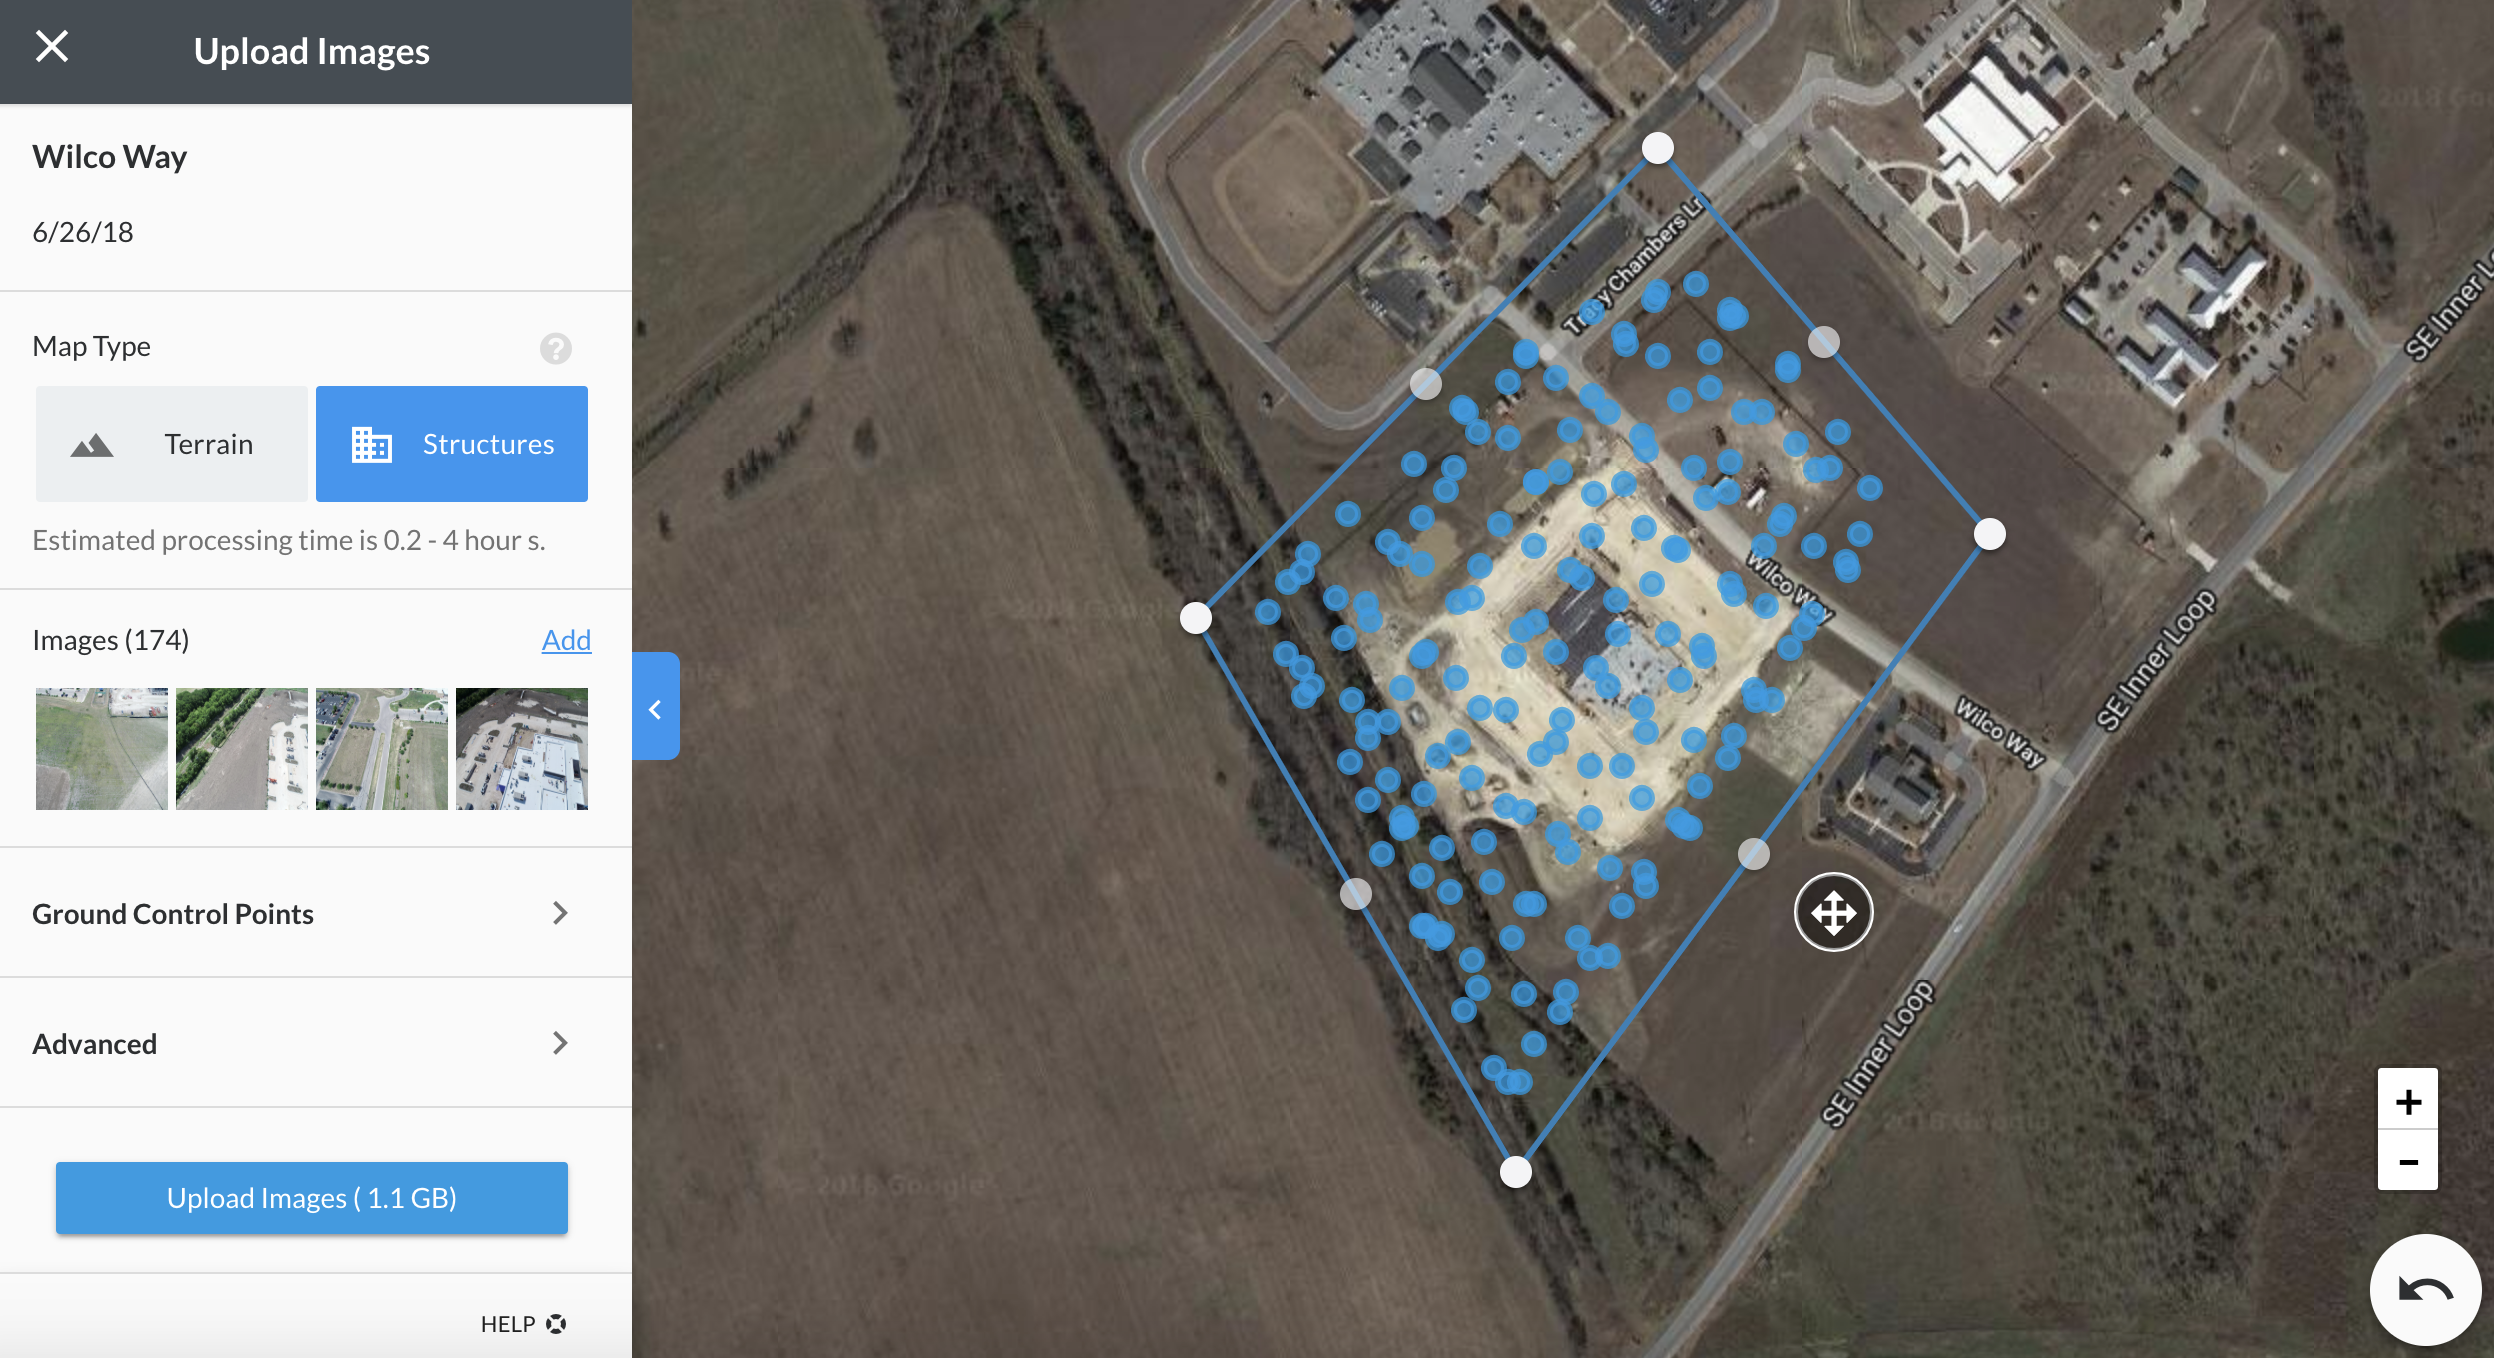 The blue dots represent the camera locations, the bounding box represents the crop boundary for the map.